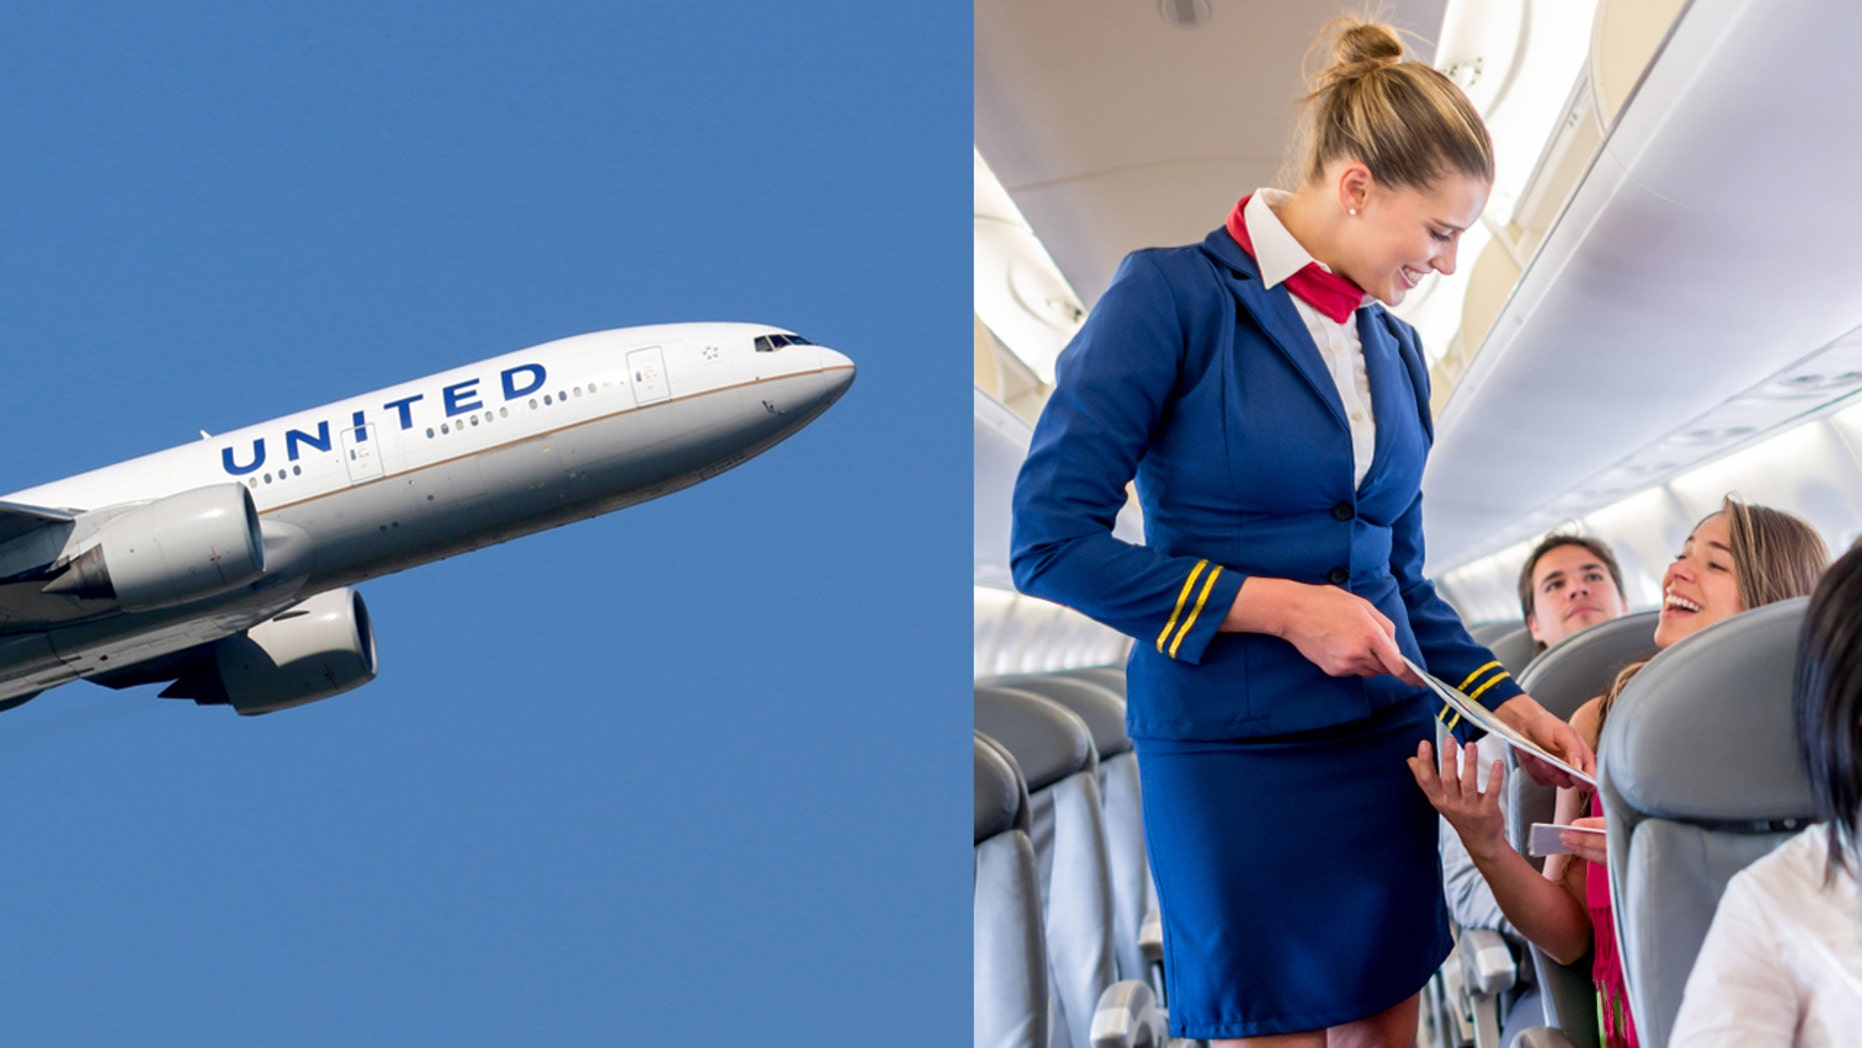 The carrier is rumored to begin mandating the promotion of credit cards by flight crews on all flights.